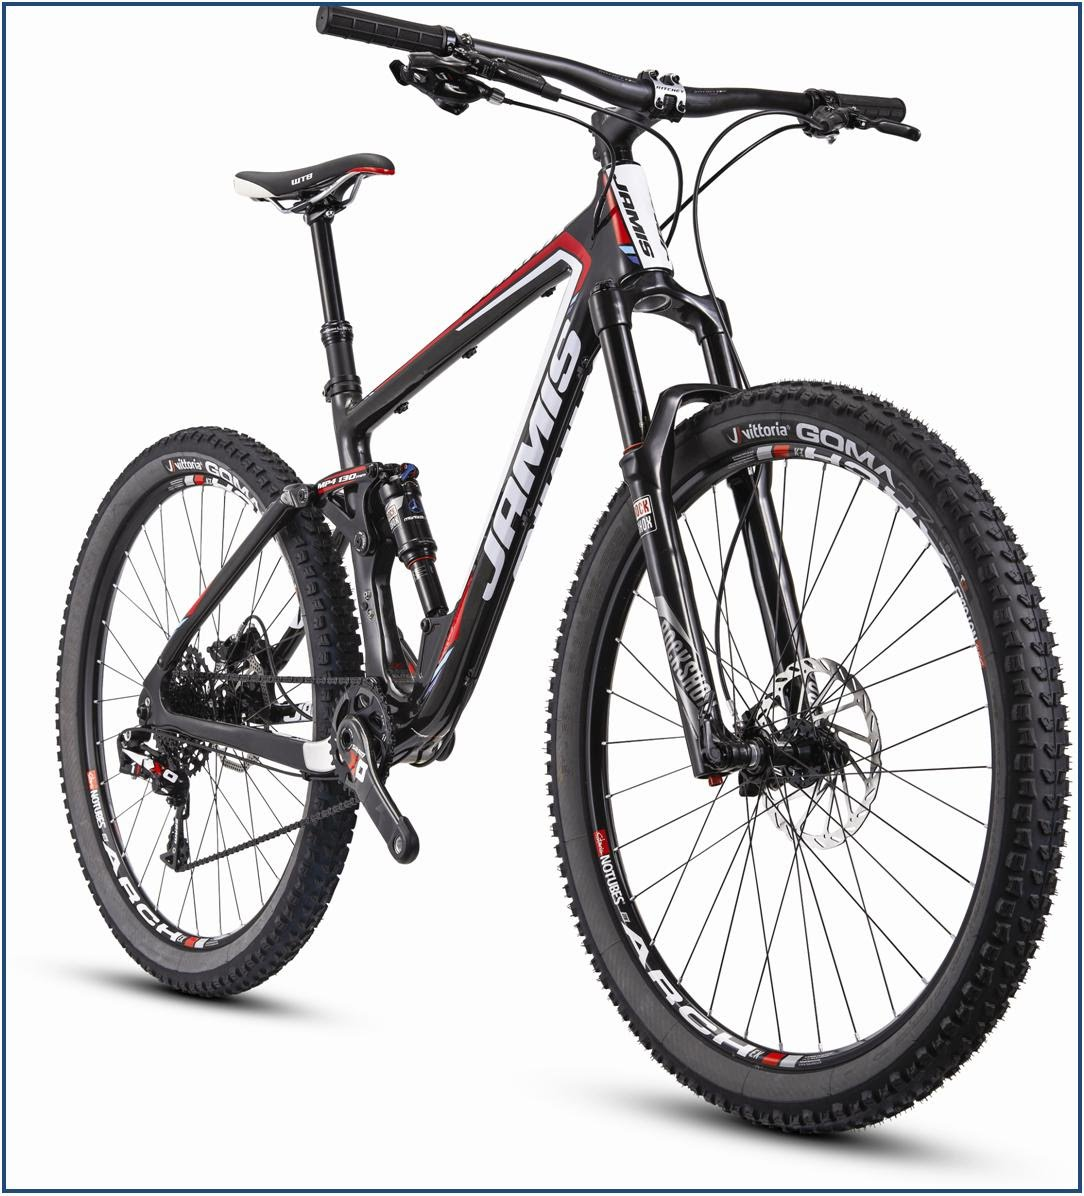 jamis dakar xct team mountain bike XC trail geo